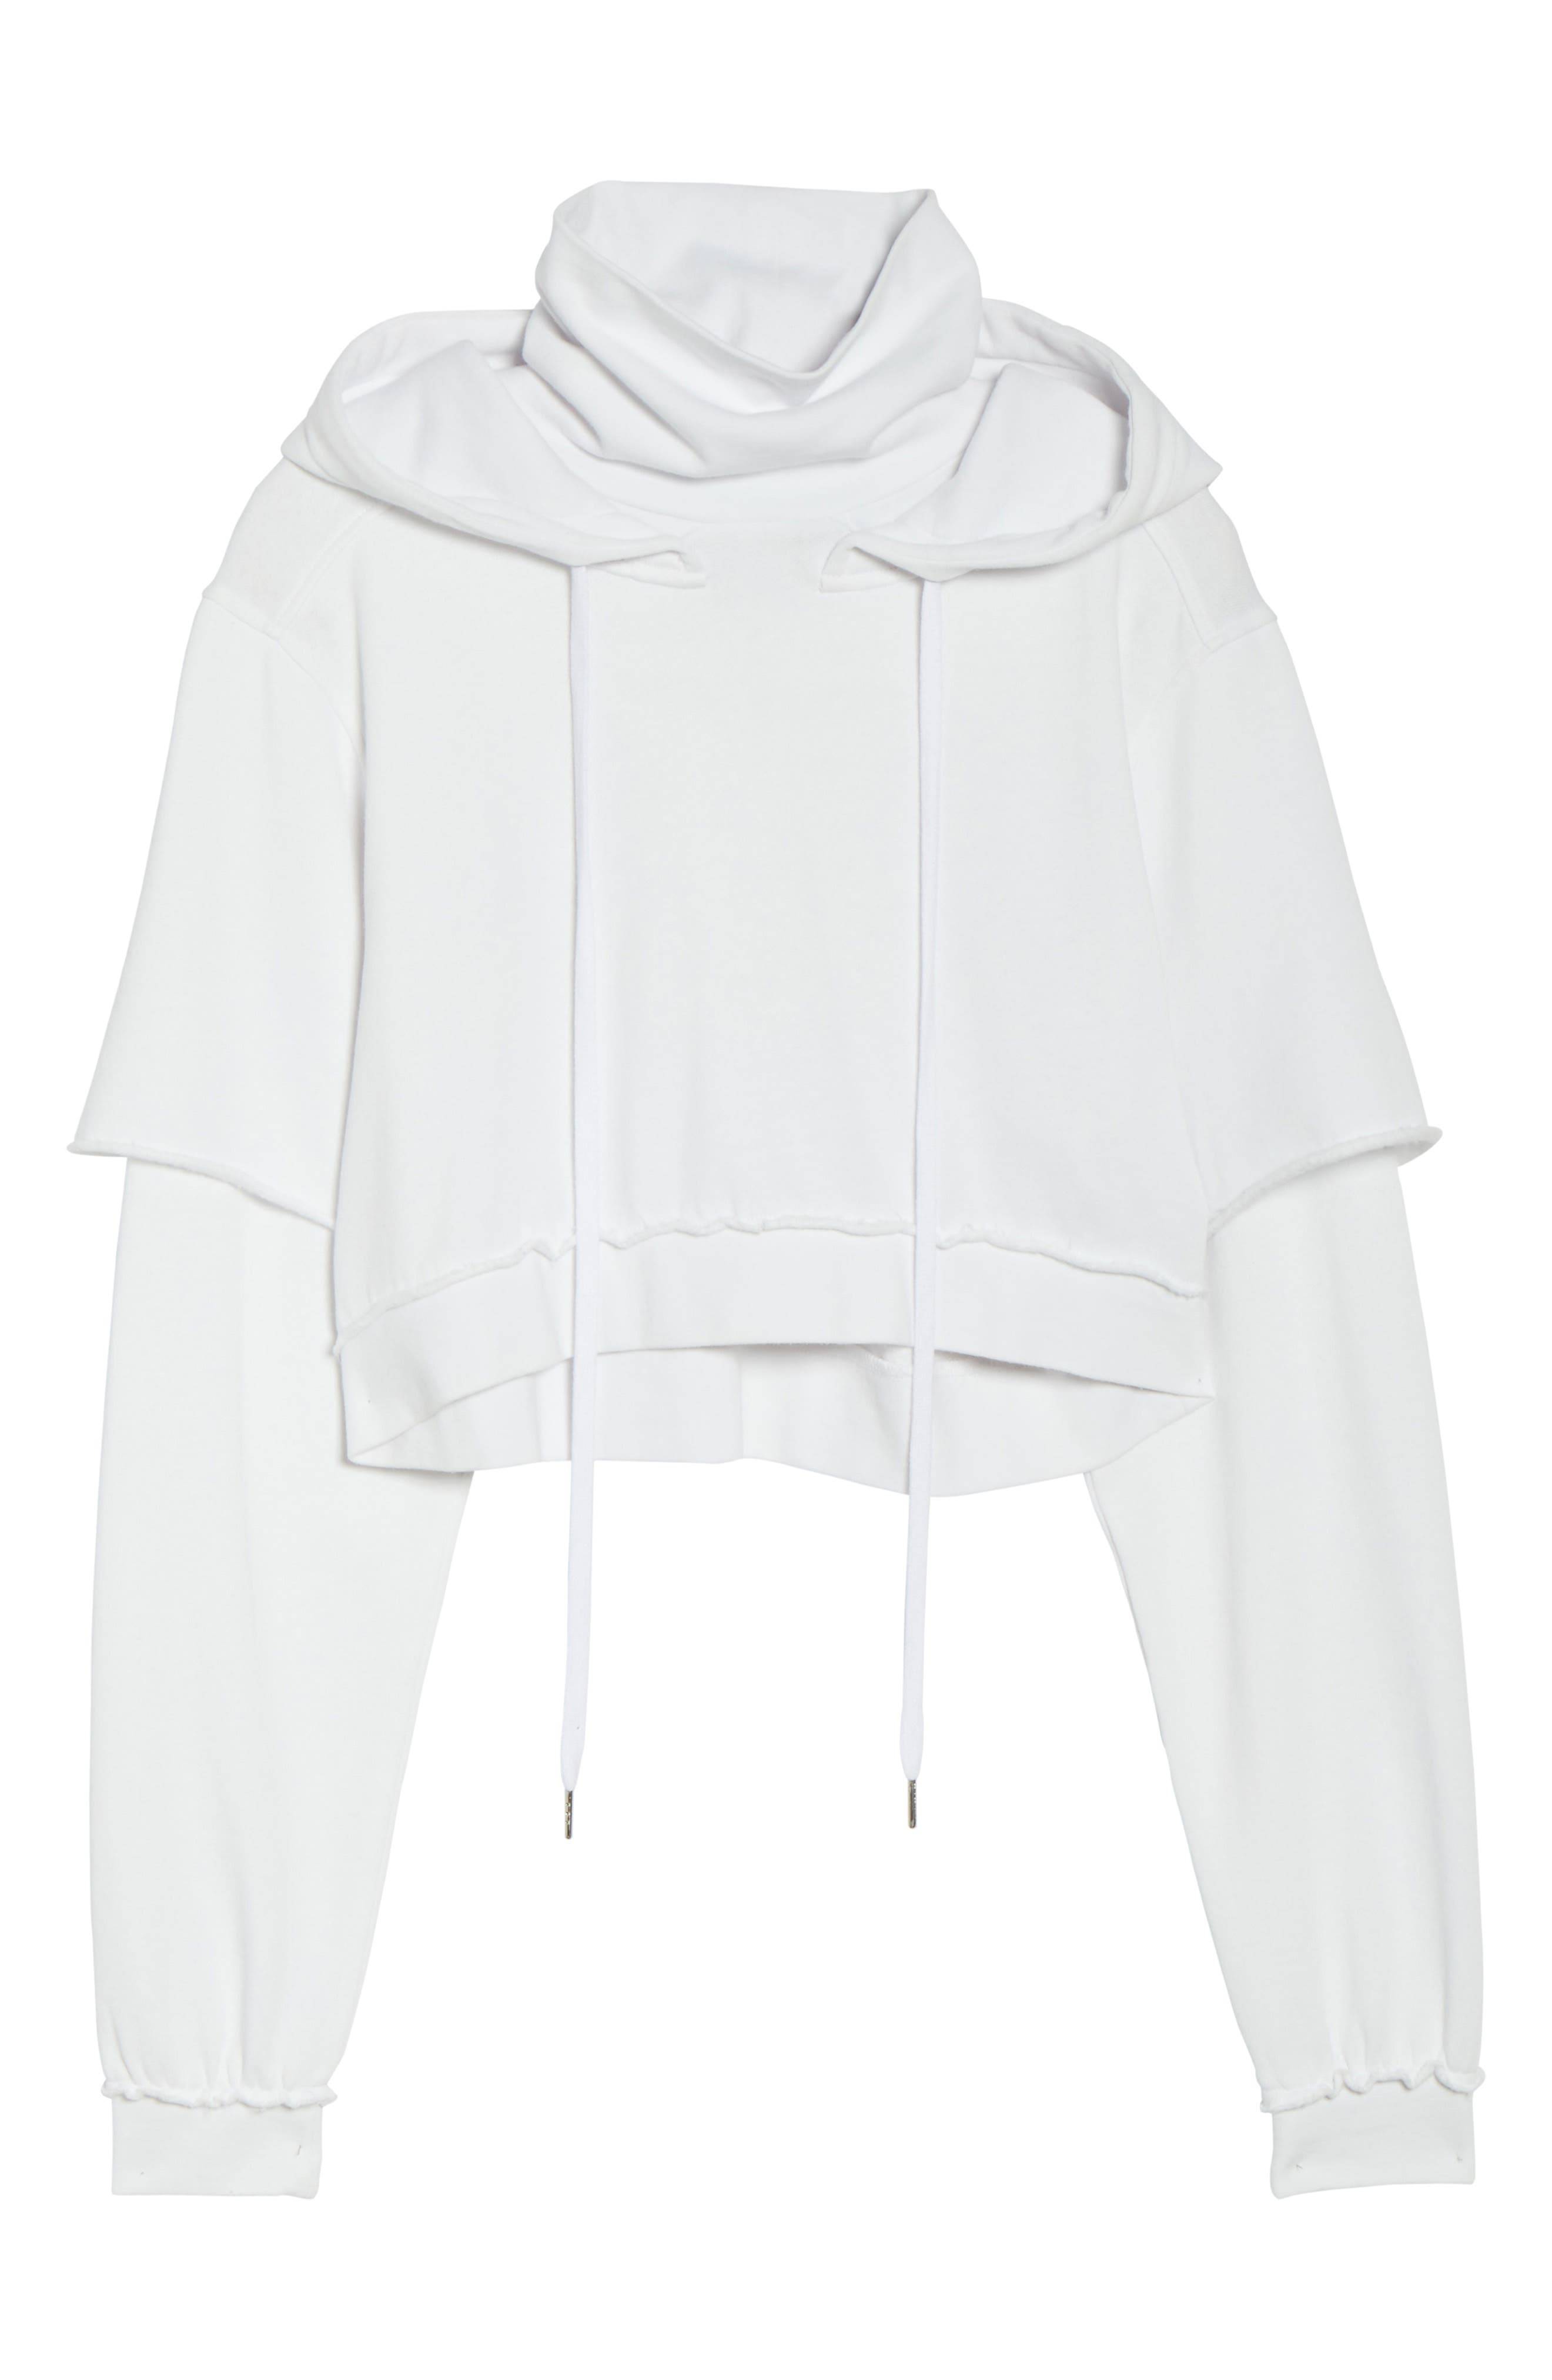 Good Hood Crop Hoodie,                             Alternate thumbnail 4, color,                             White